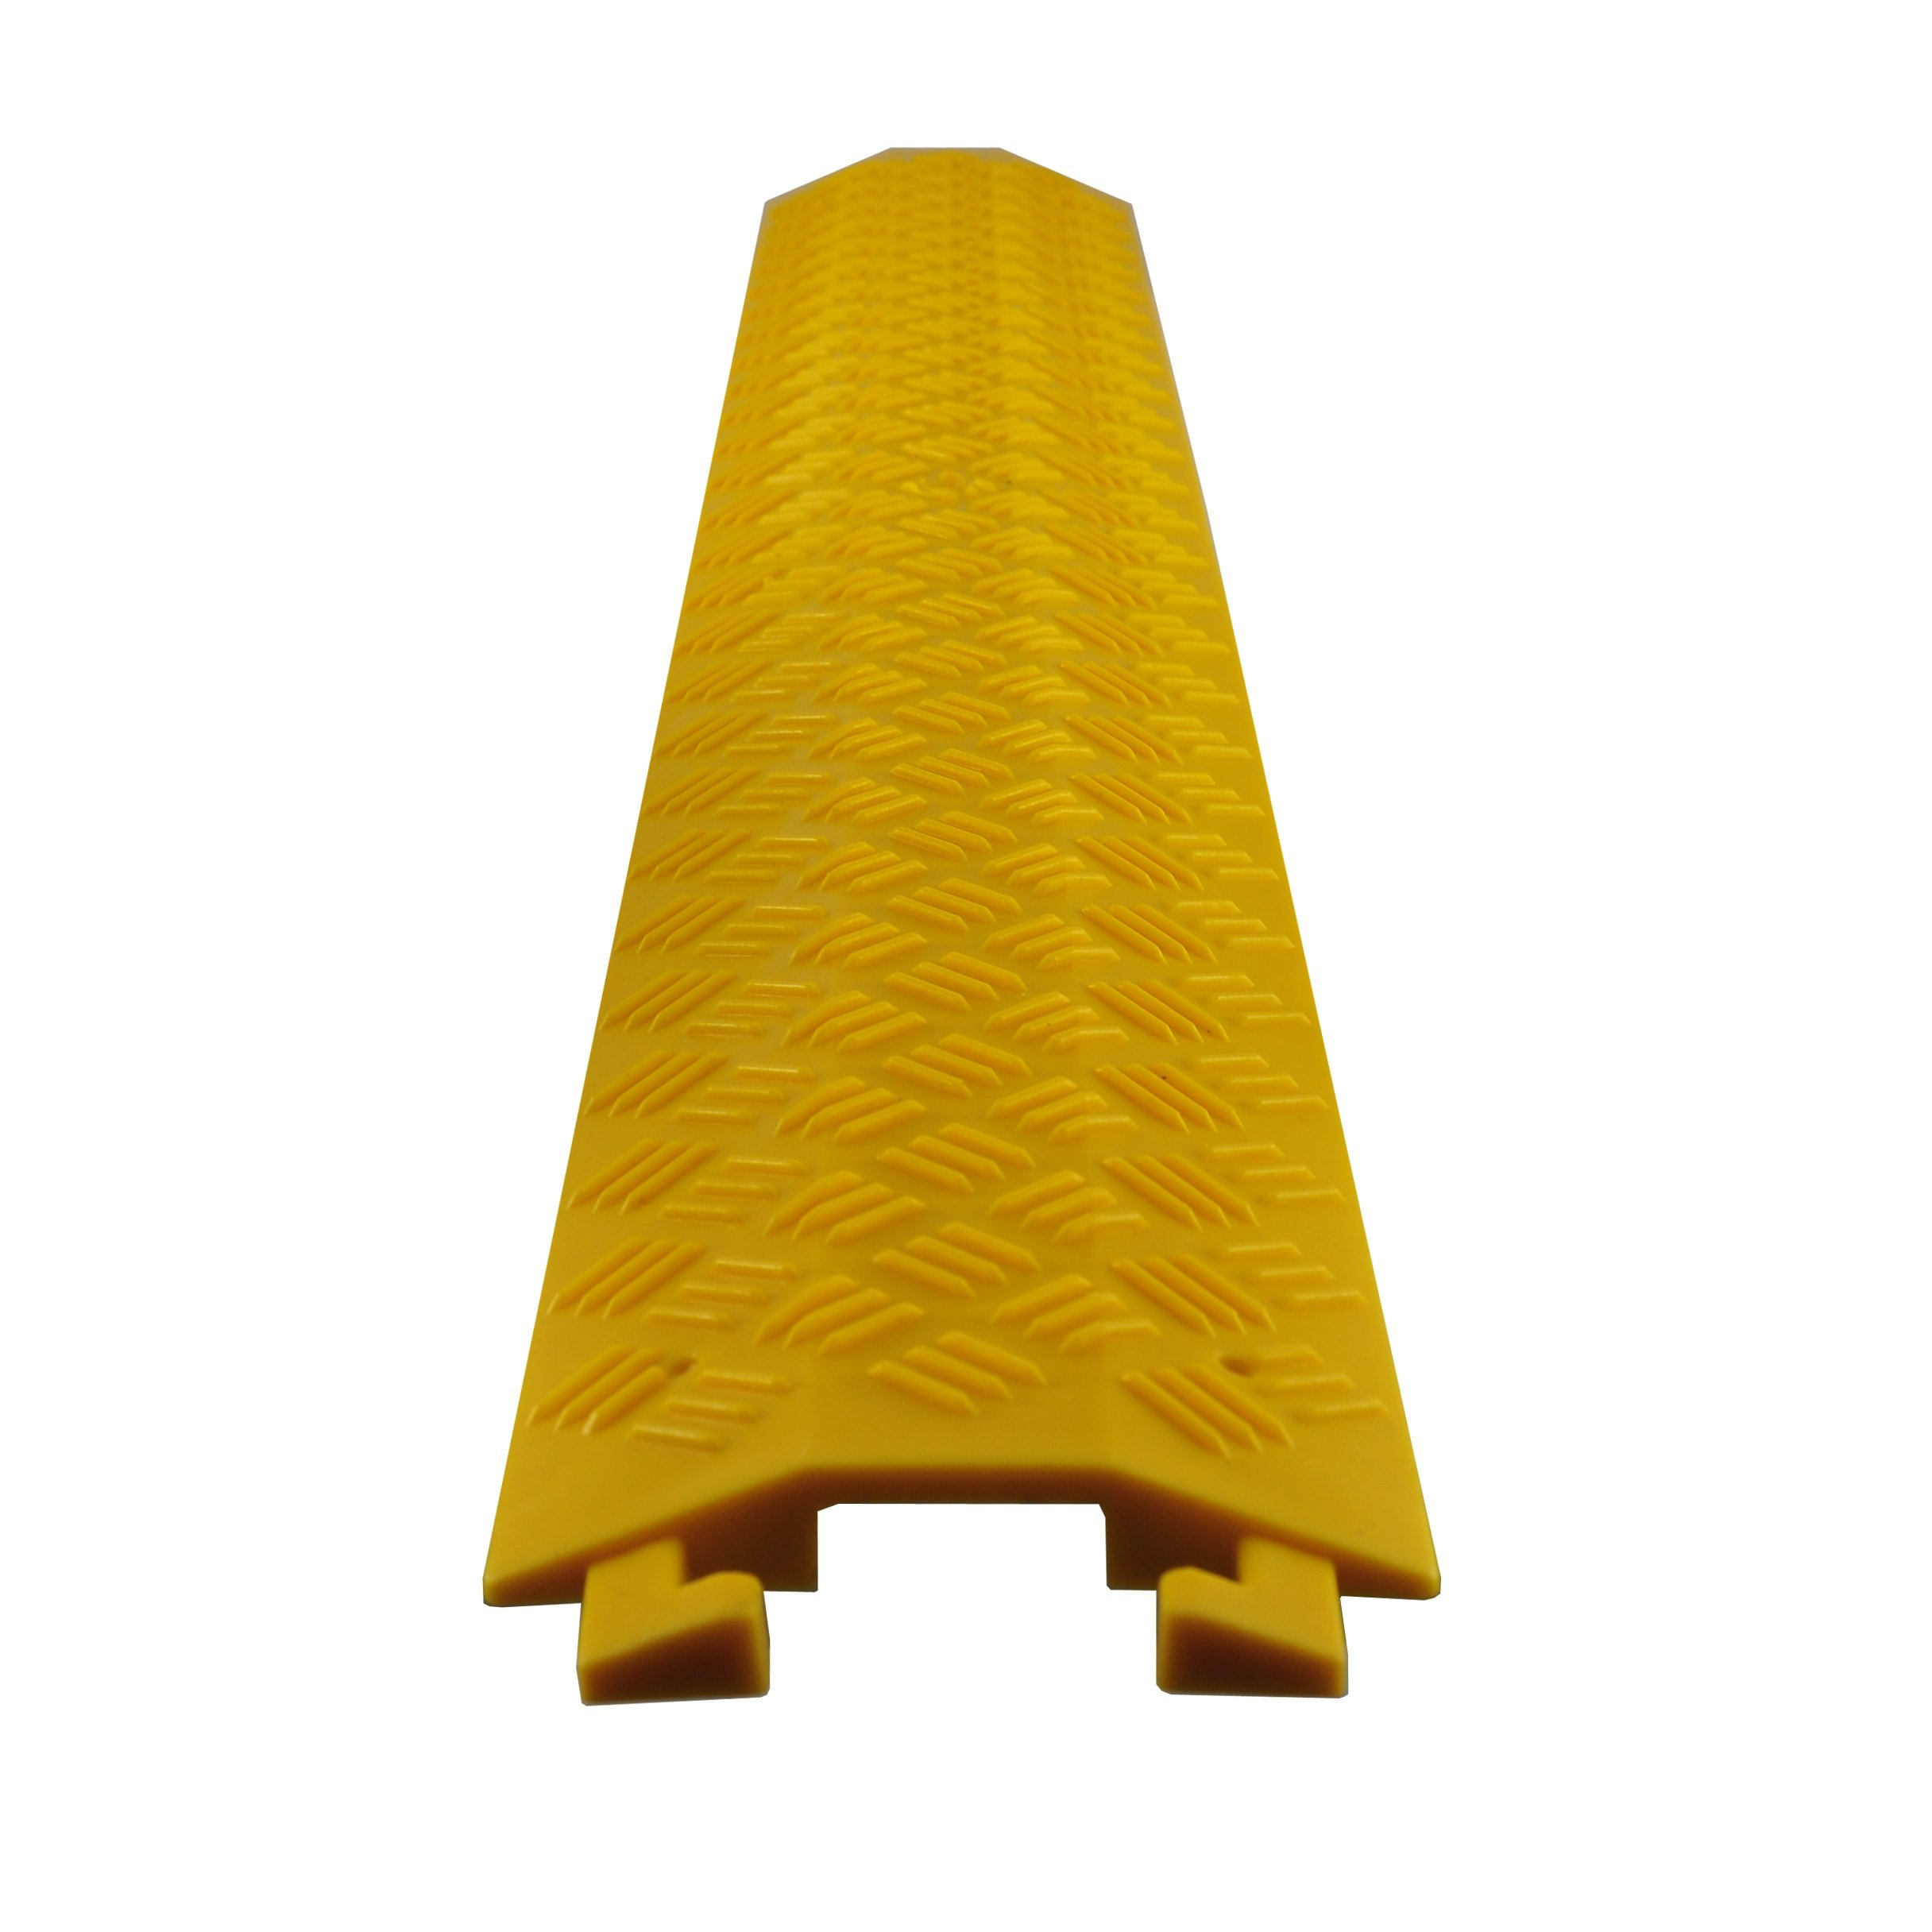 Durable Cable Ramp Protective Cover - 2,000 lbs Max Heavy Duty Drop Over Hose and Cable Track Protector, Cable Concealer for Outdoor and Indoor Use - Pyle PCBLCO19 (Renewed)